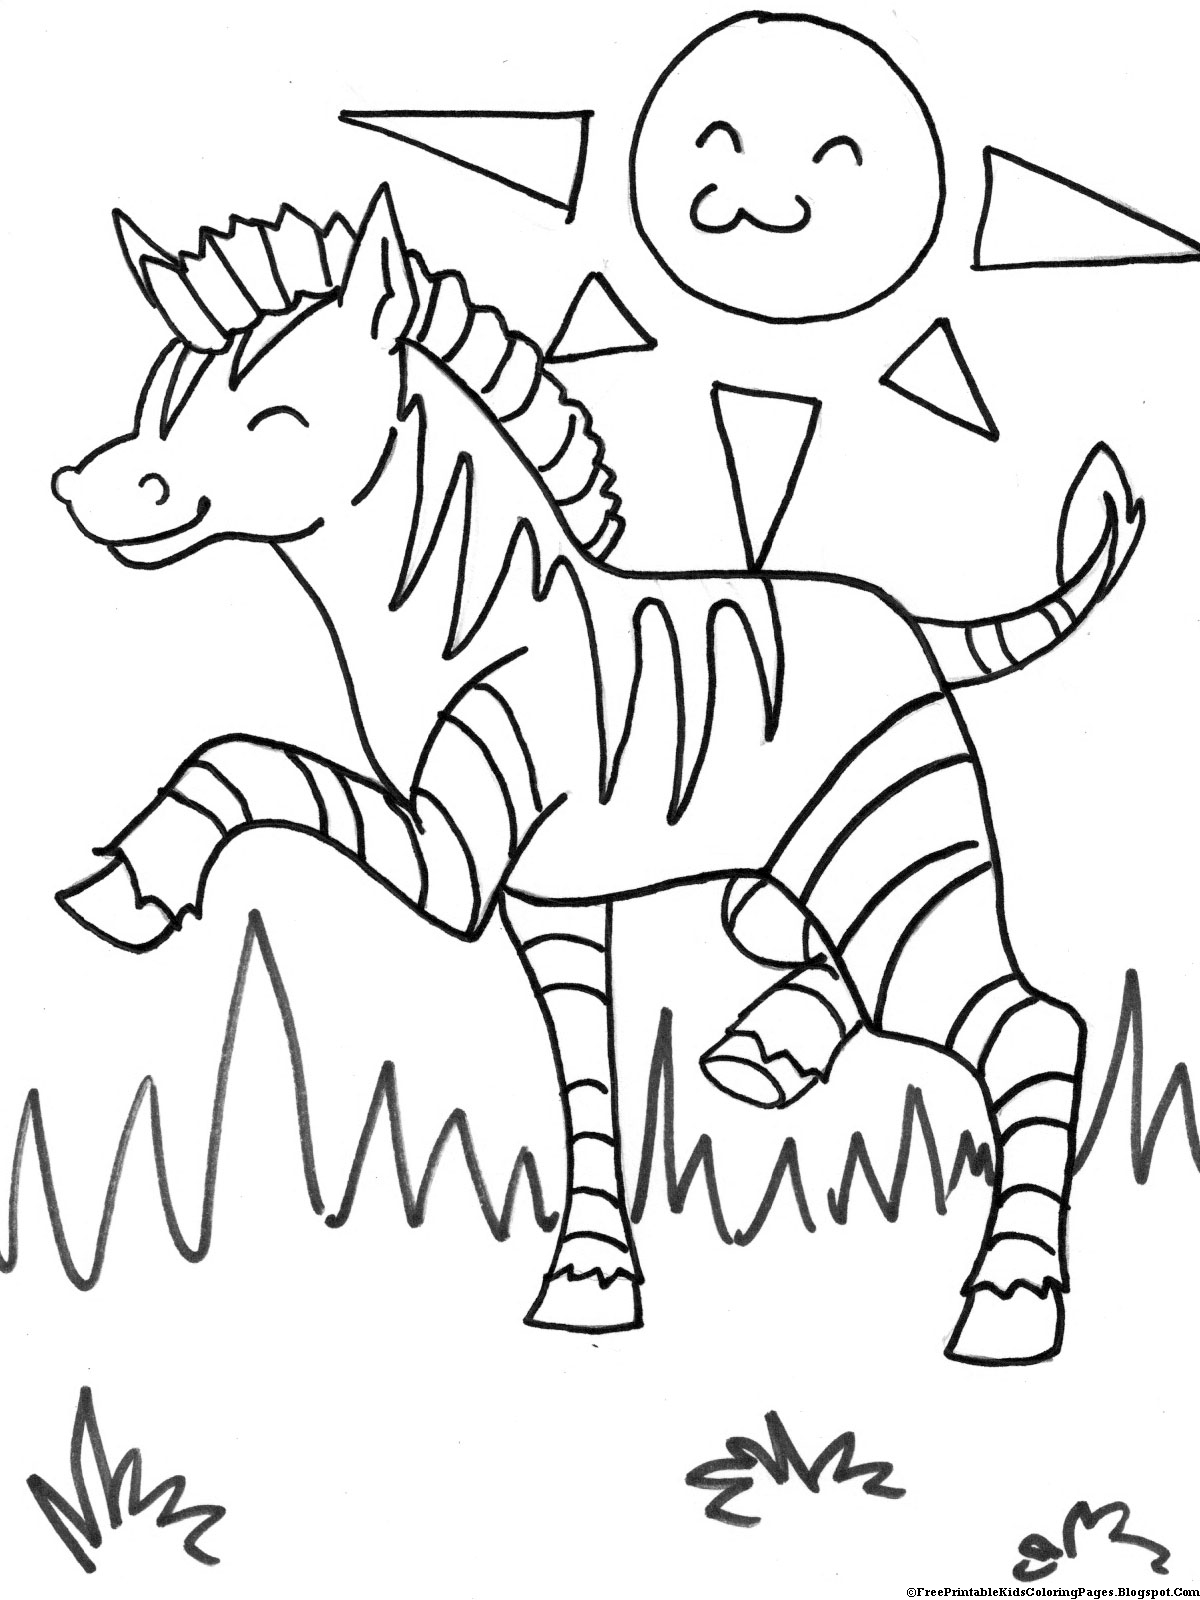 zoo coloring pages printable animals zoo coloring pages coloringpagebookcom pages coloring zoo